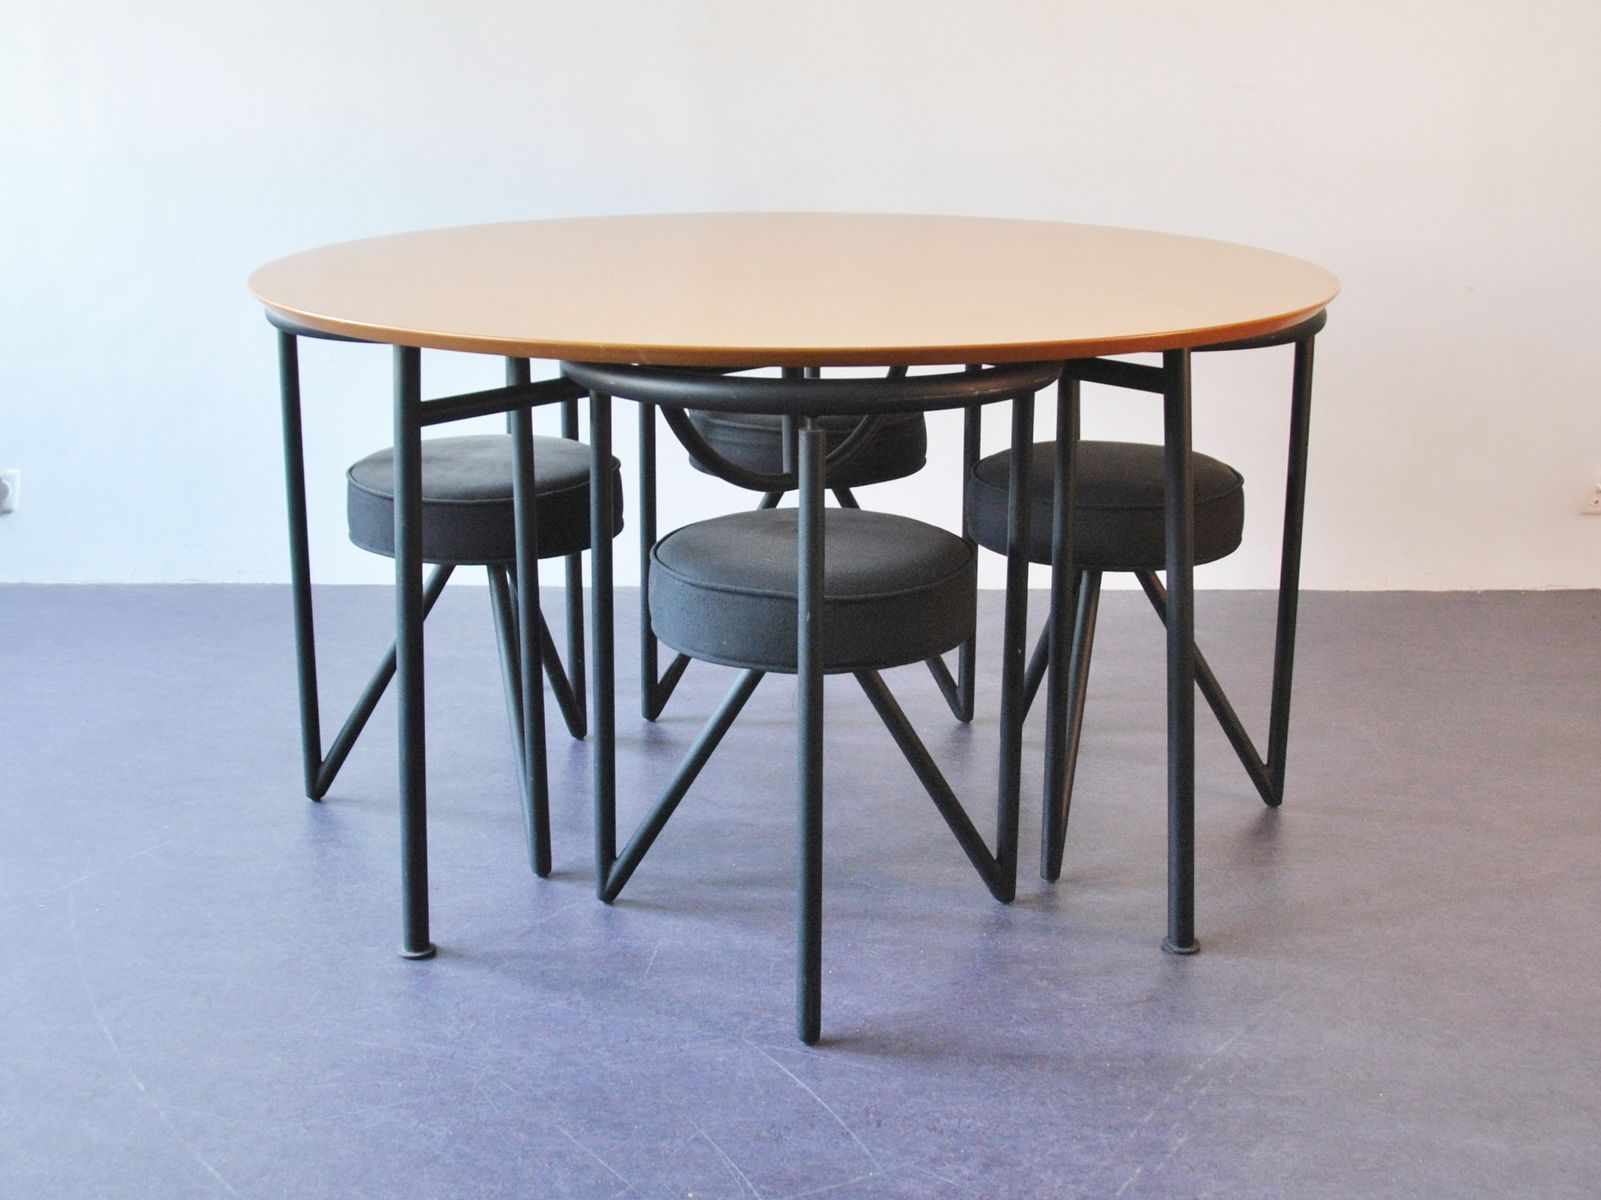 Nina freed dining table by philippe starck 1983 for sale at pamono for Philippe starck tables